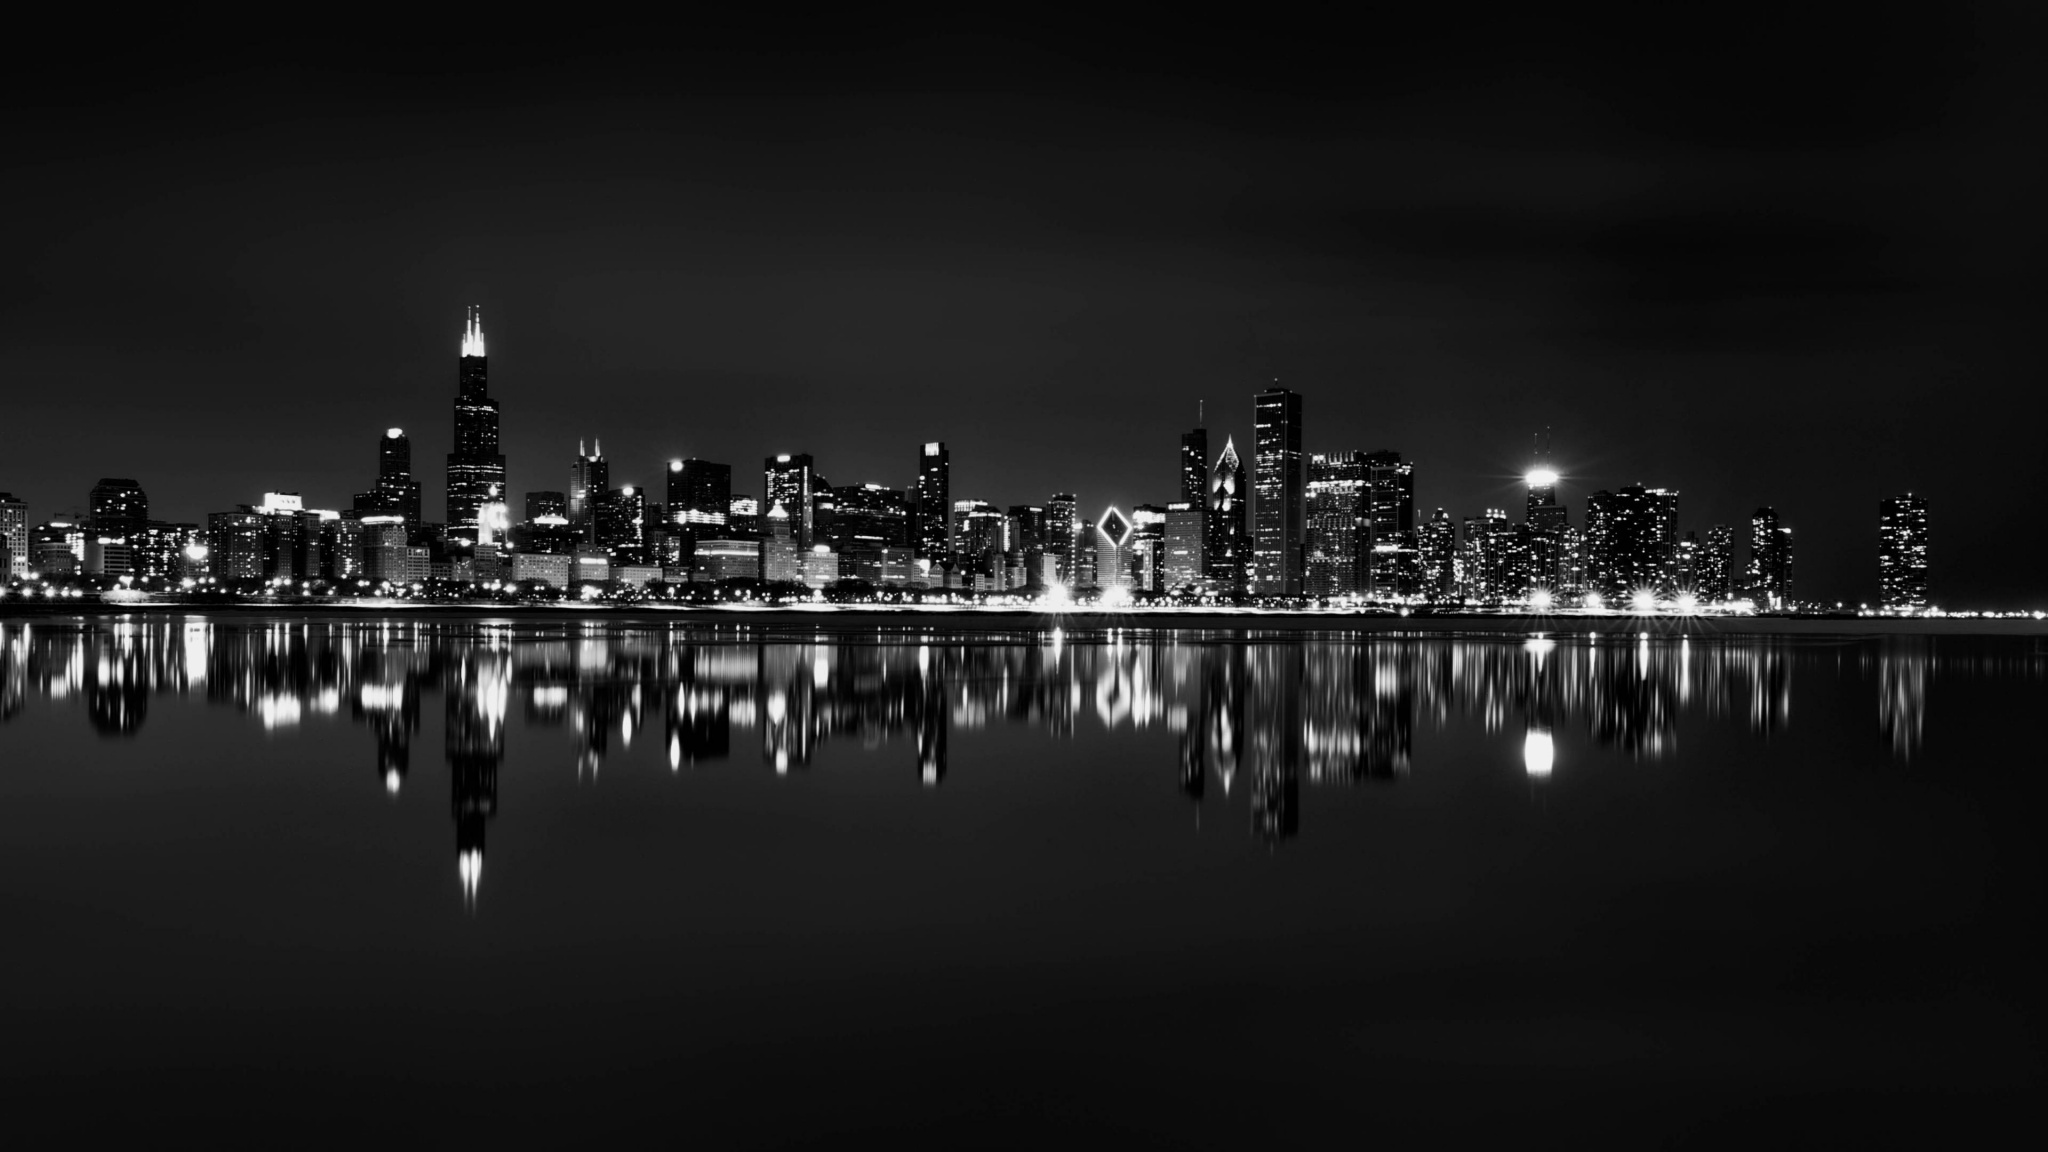 Fantastic Wallpaper Mac Chicago - chicago_skyline_backgrounds-2048x1152  Photograph_3216100.jpg